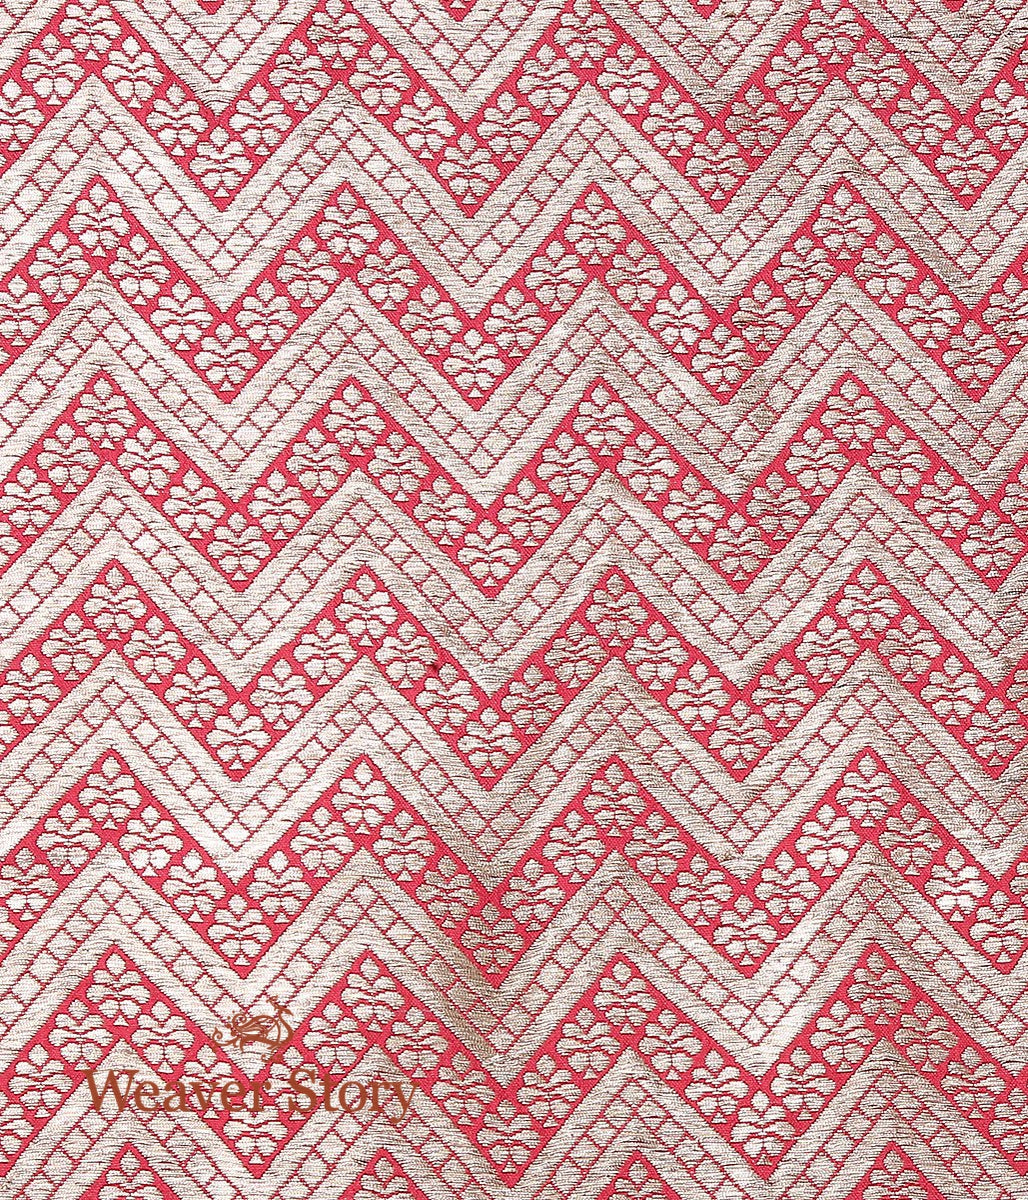 Handwoven Red Brocade Fabric with Chevron Weave